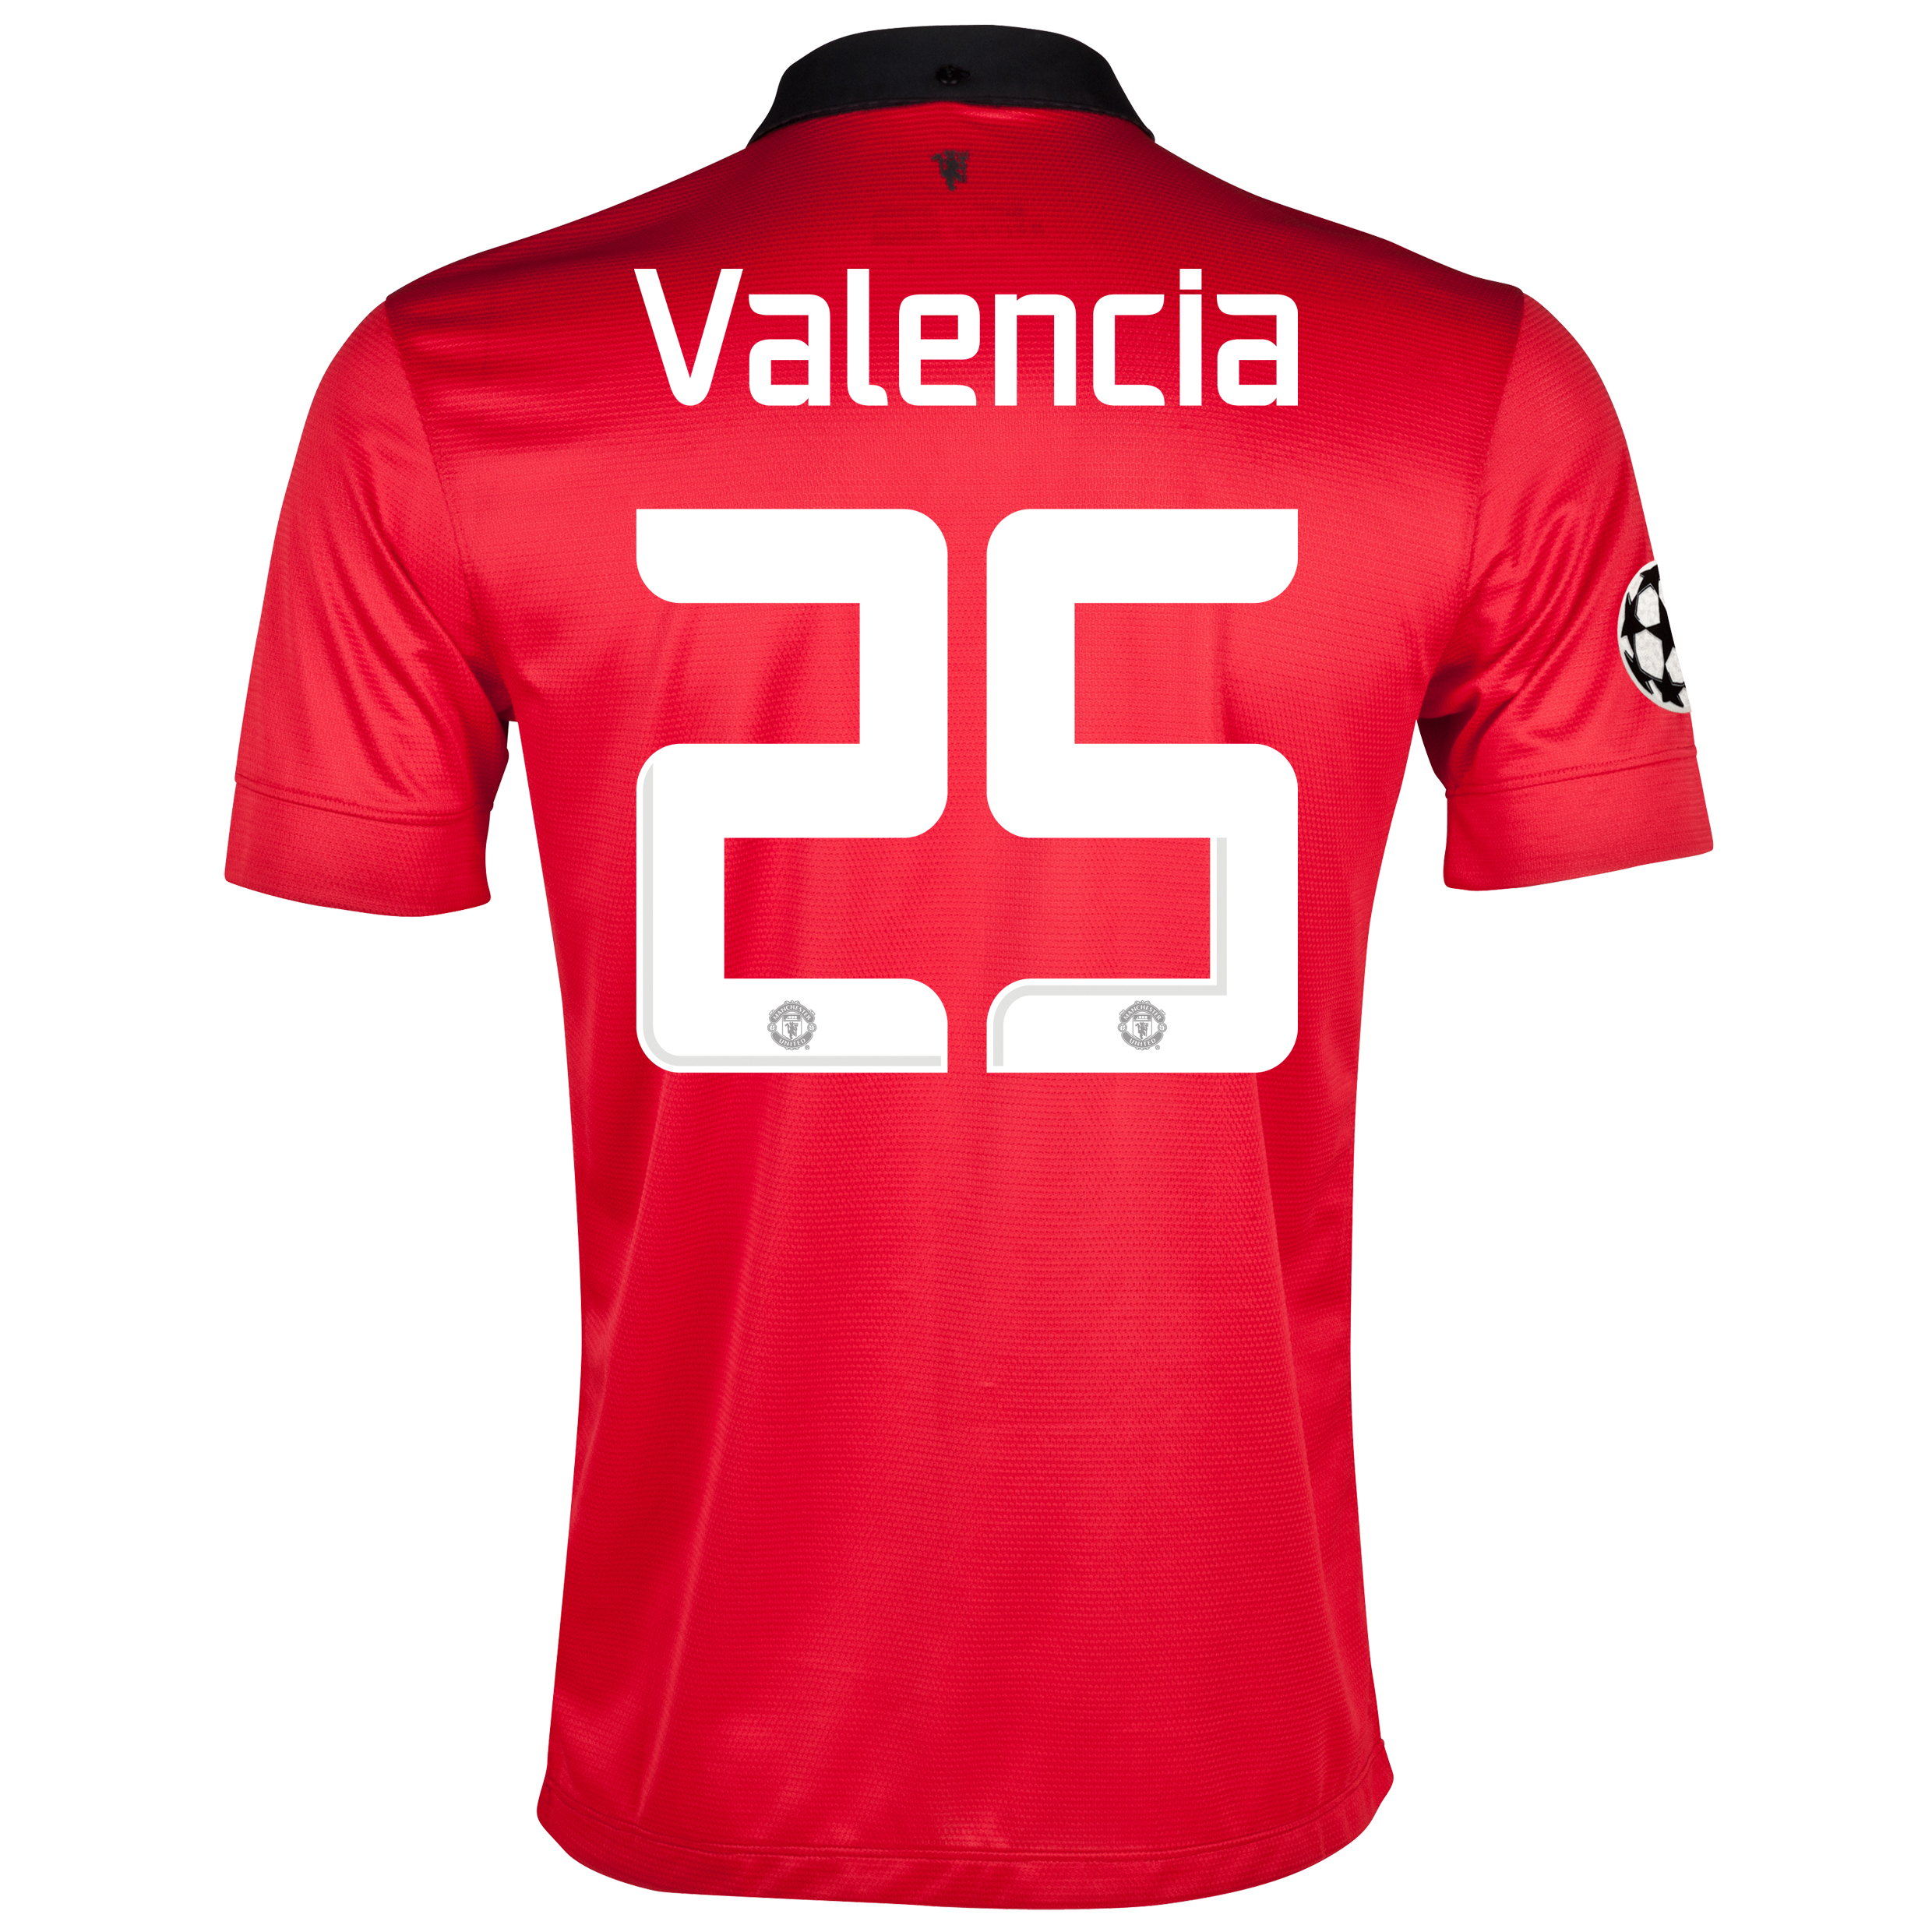 Manchester United UEFA Champions League Home Shirt 2013/14 with Valencia 25 printing